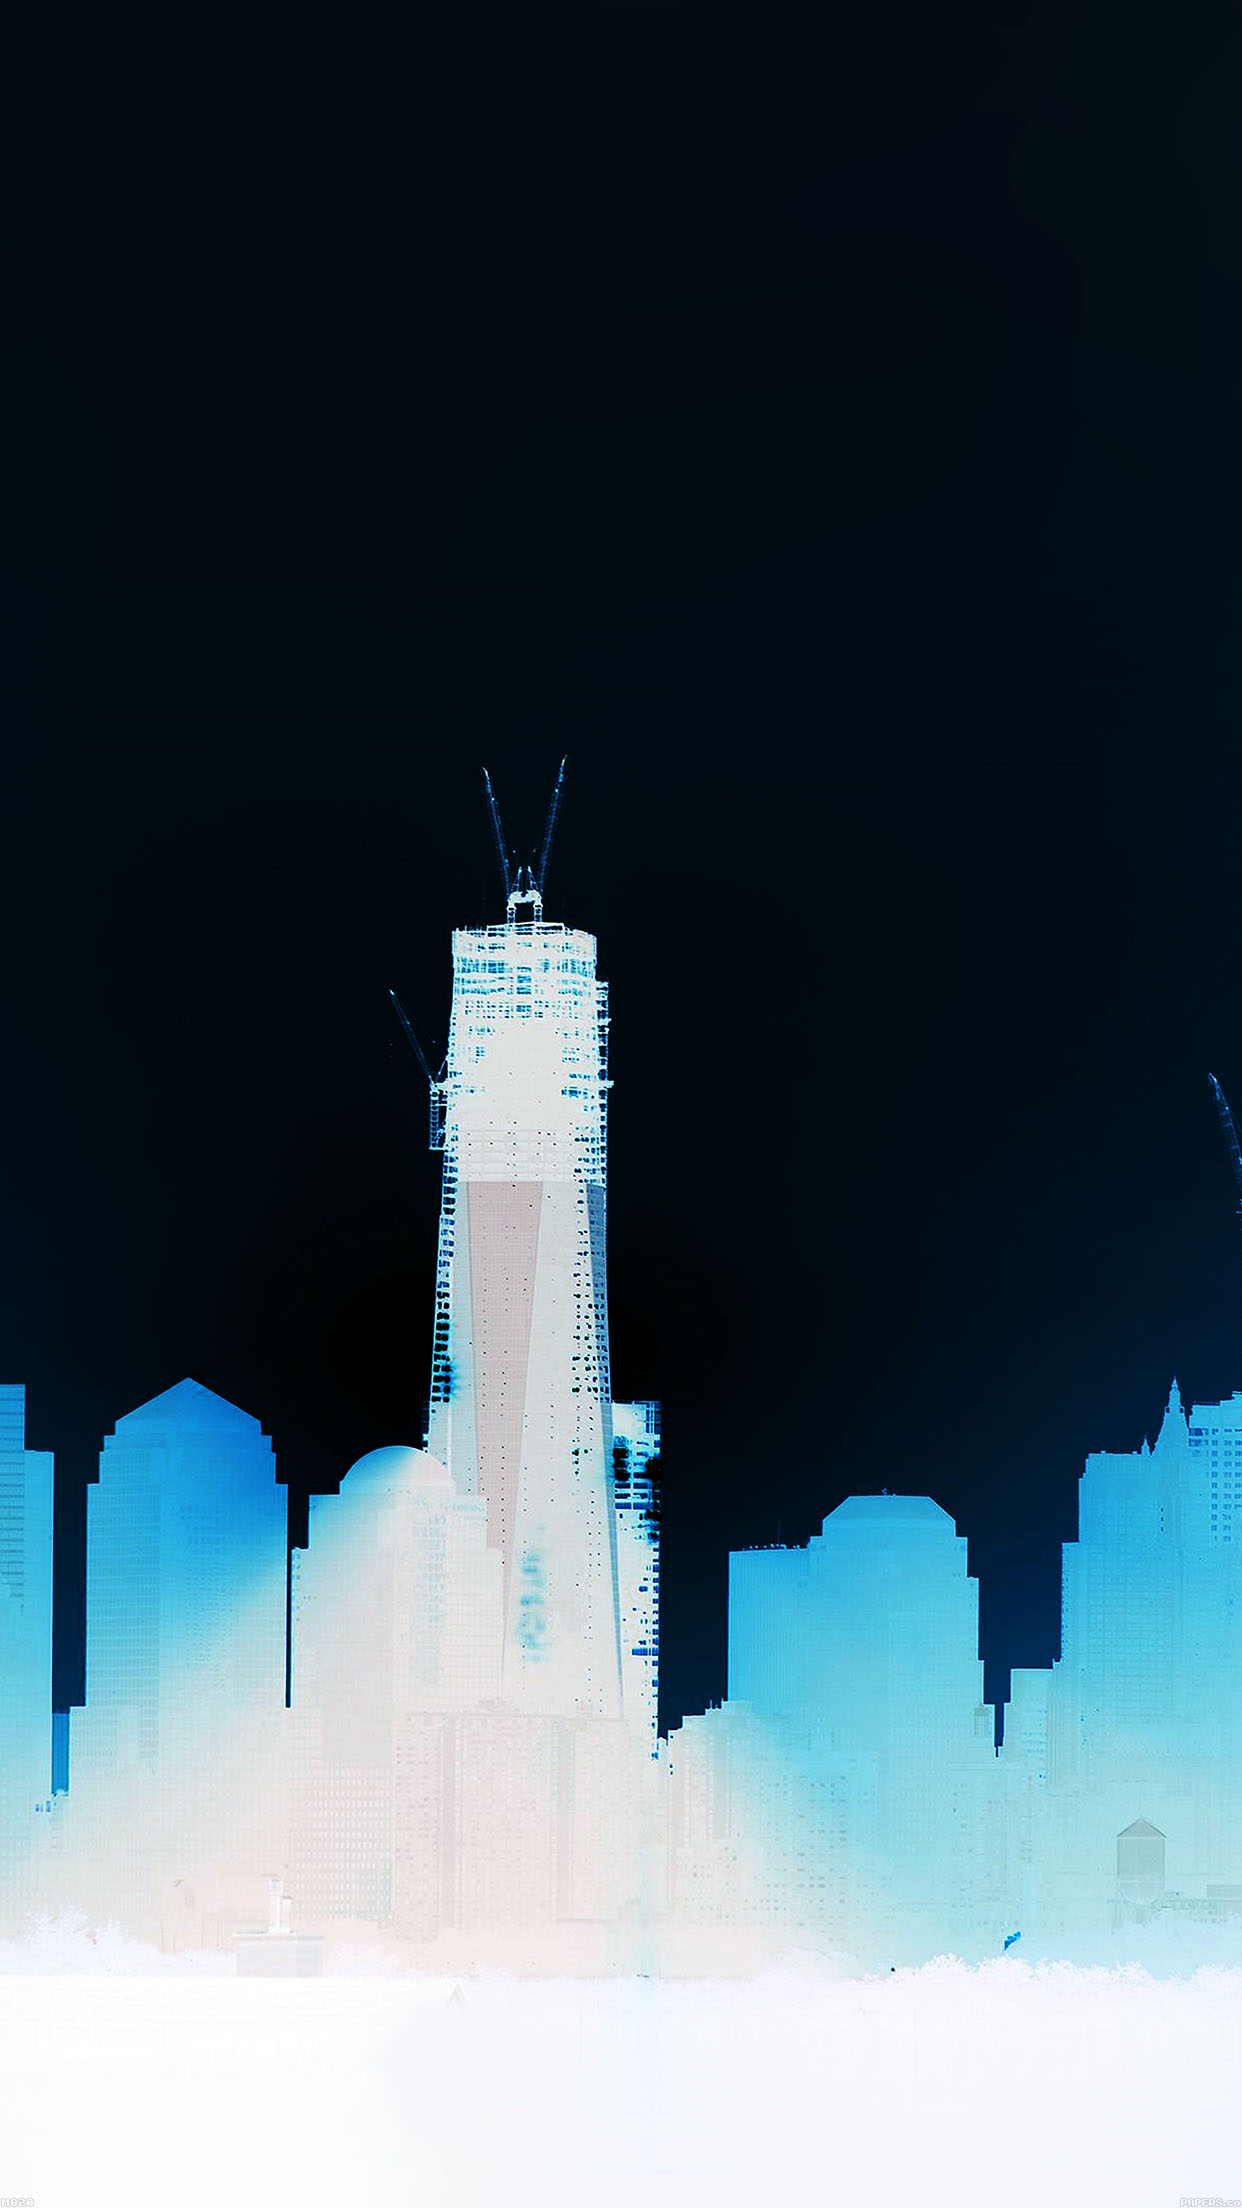 Construction Sky Line In Blue City Day iPhone wallpaper